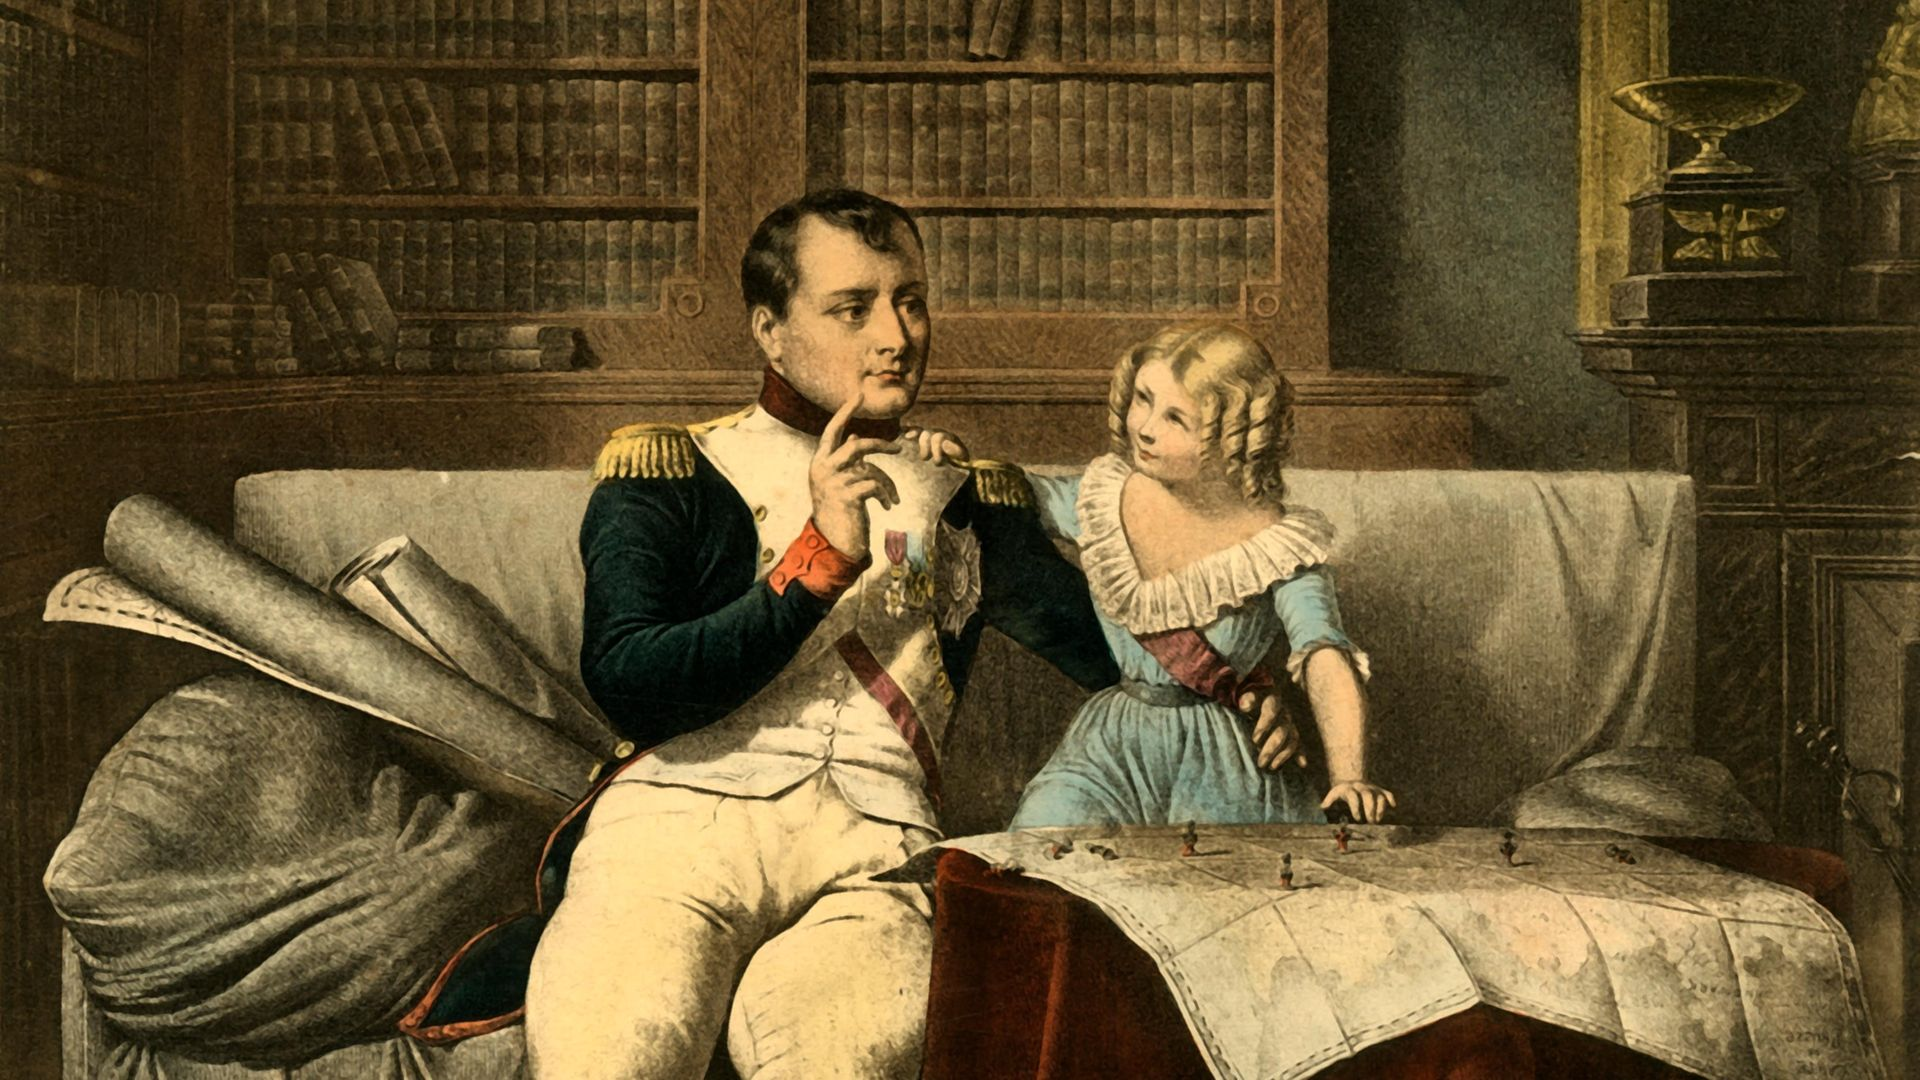 Napoleon, surrounded by books in his office, takes a break from reading to discuss military matter with a small child, in this image from 1921. Despite the dress and ringlets, this may be his son, also named Napoleon - Credit: The Print Collector/Heritage Ima